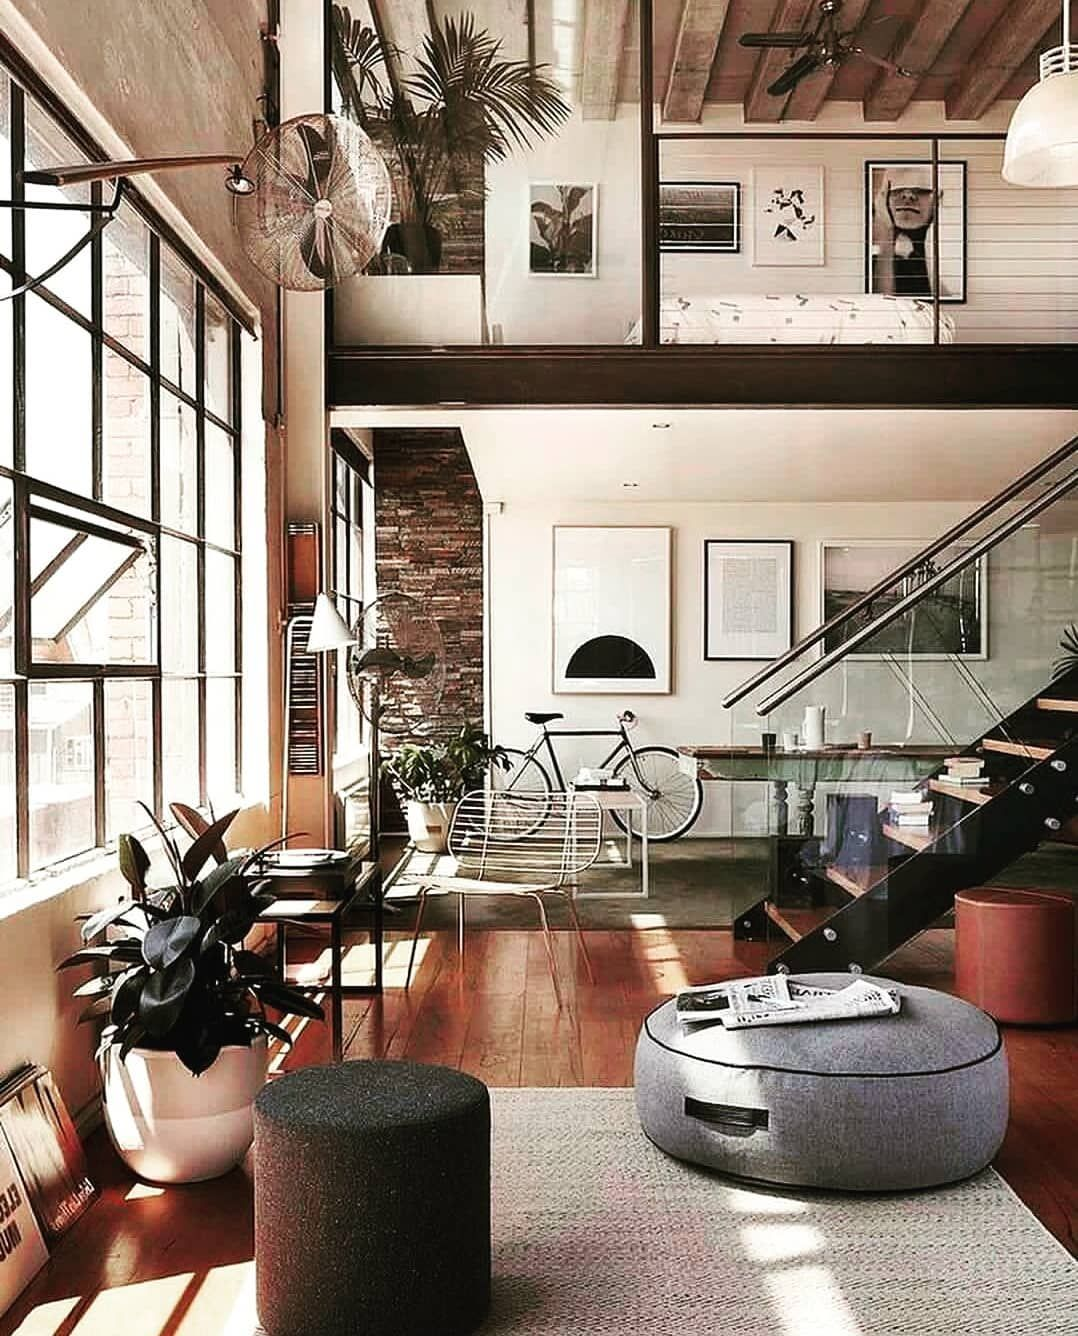 New The 10 Best Home Decor With Pictures Interior Goals Tag Your Friend Who D L Loft Apartment Designs Apartment Interior Design Small Loft Apartments